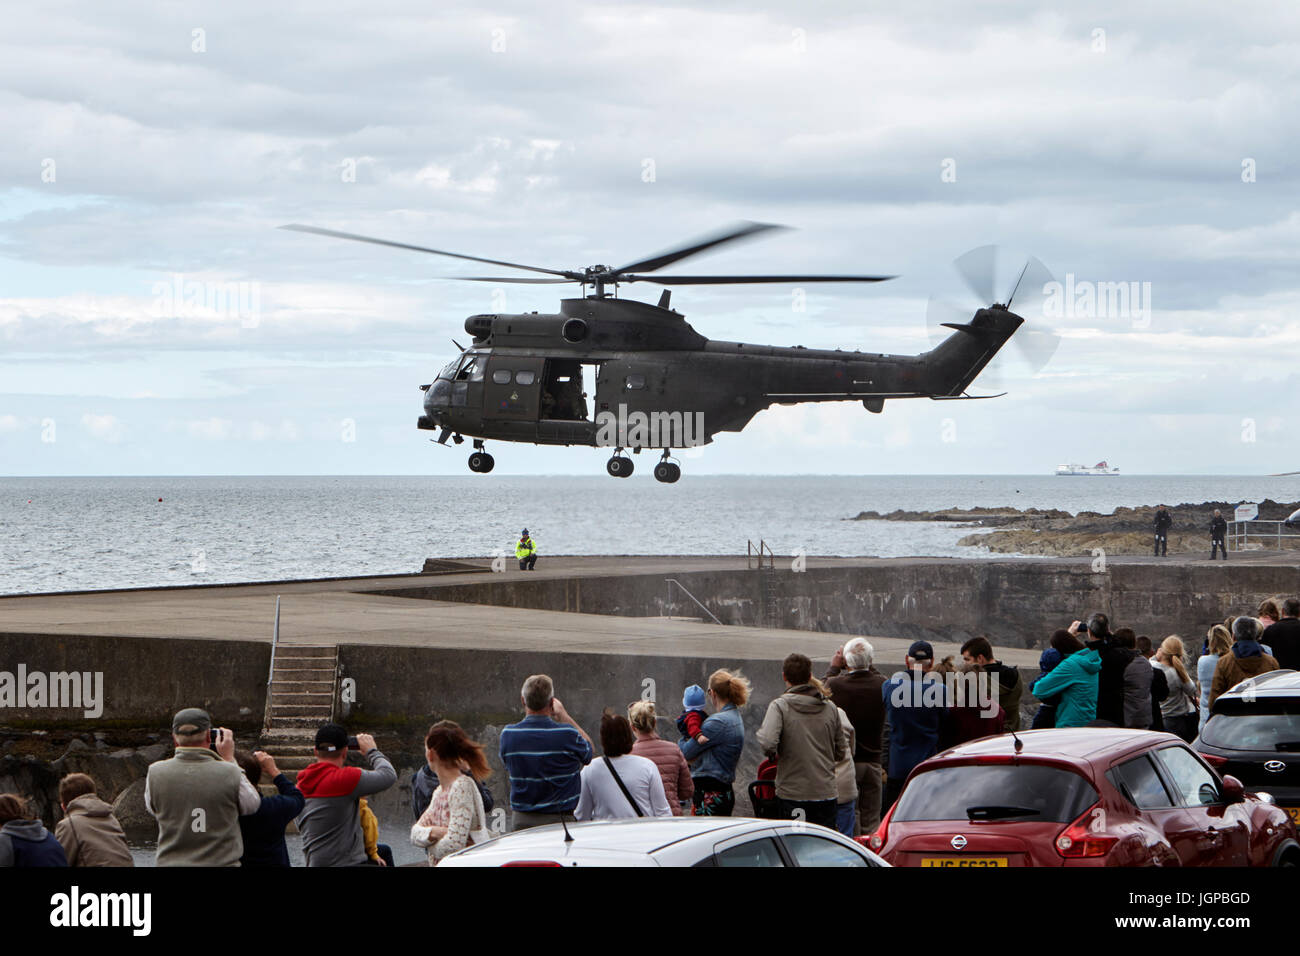 Royal Air Force XW209 westland puma helicopter readying for take off armed forces day bangor northern ireland - Stock Image